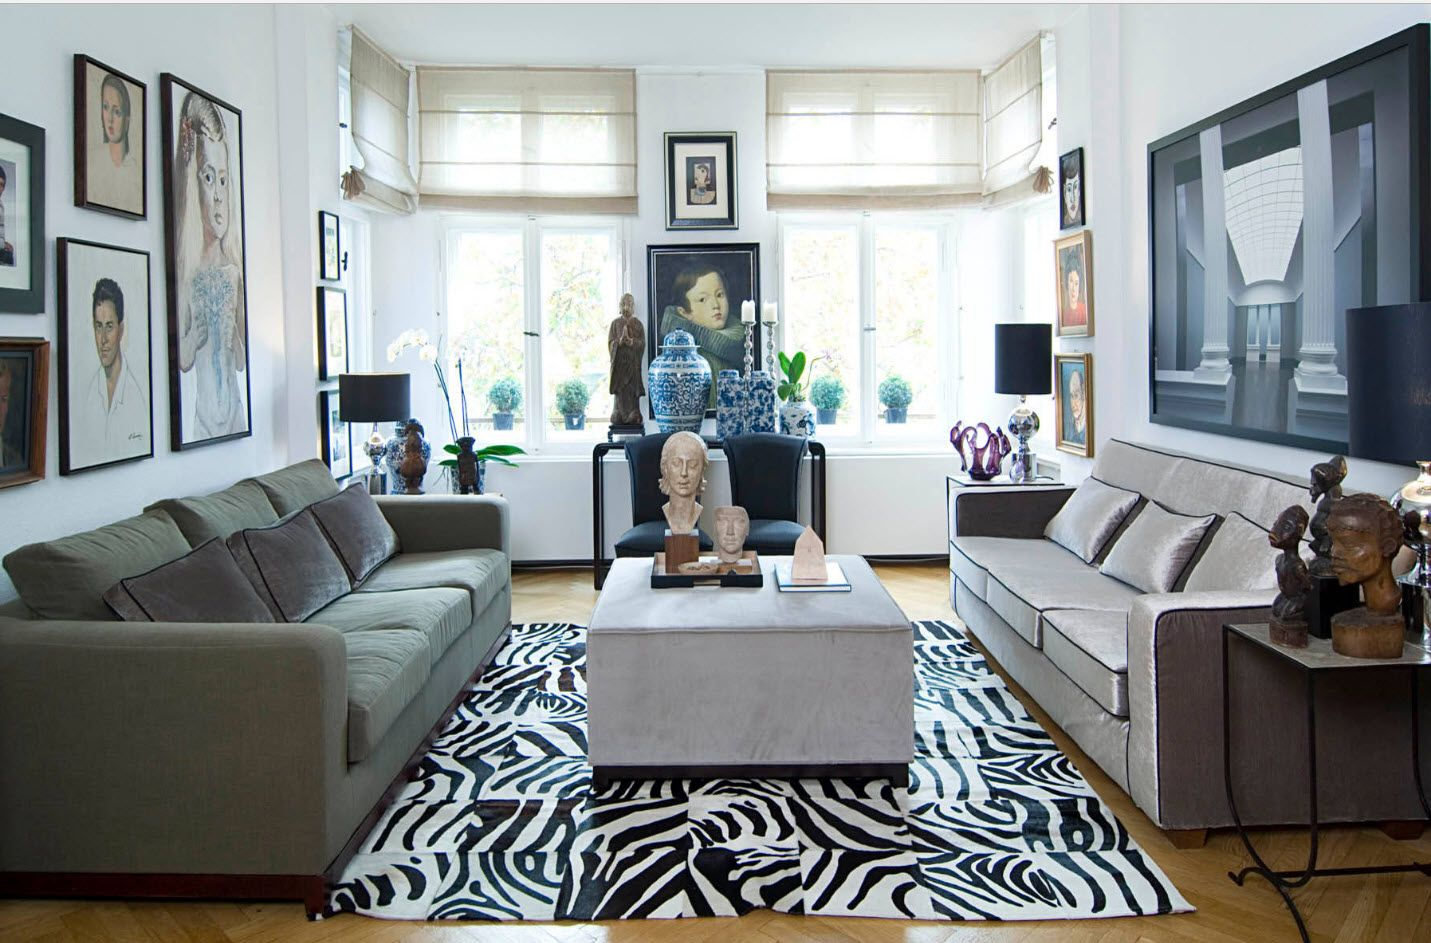 Zebra carpeting in the center of modern living room